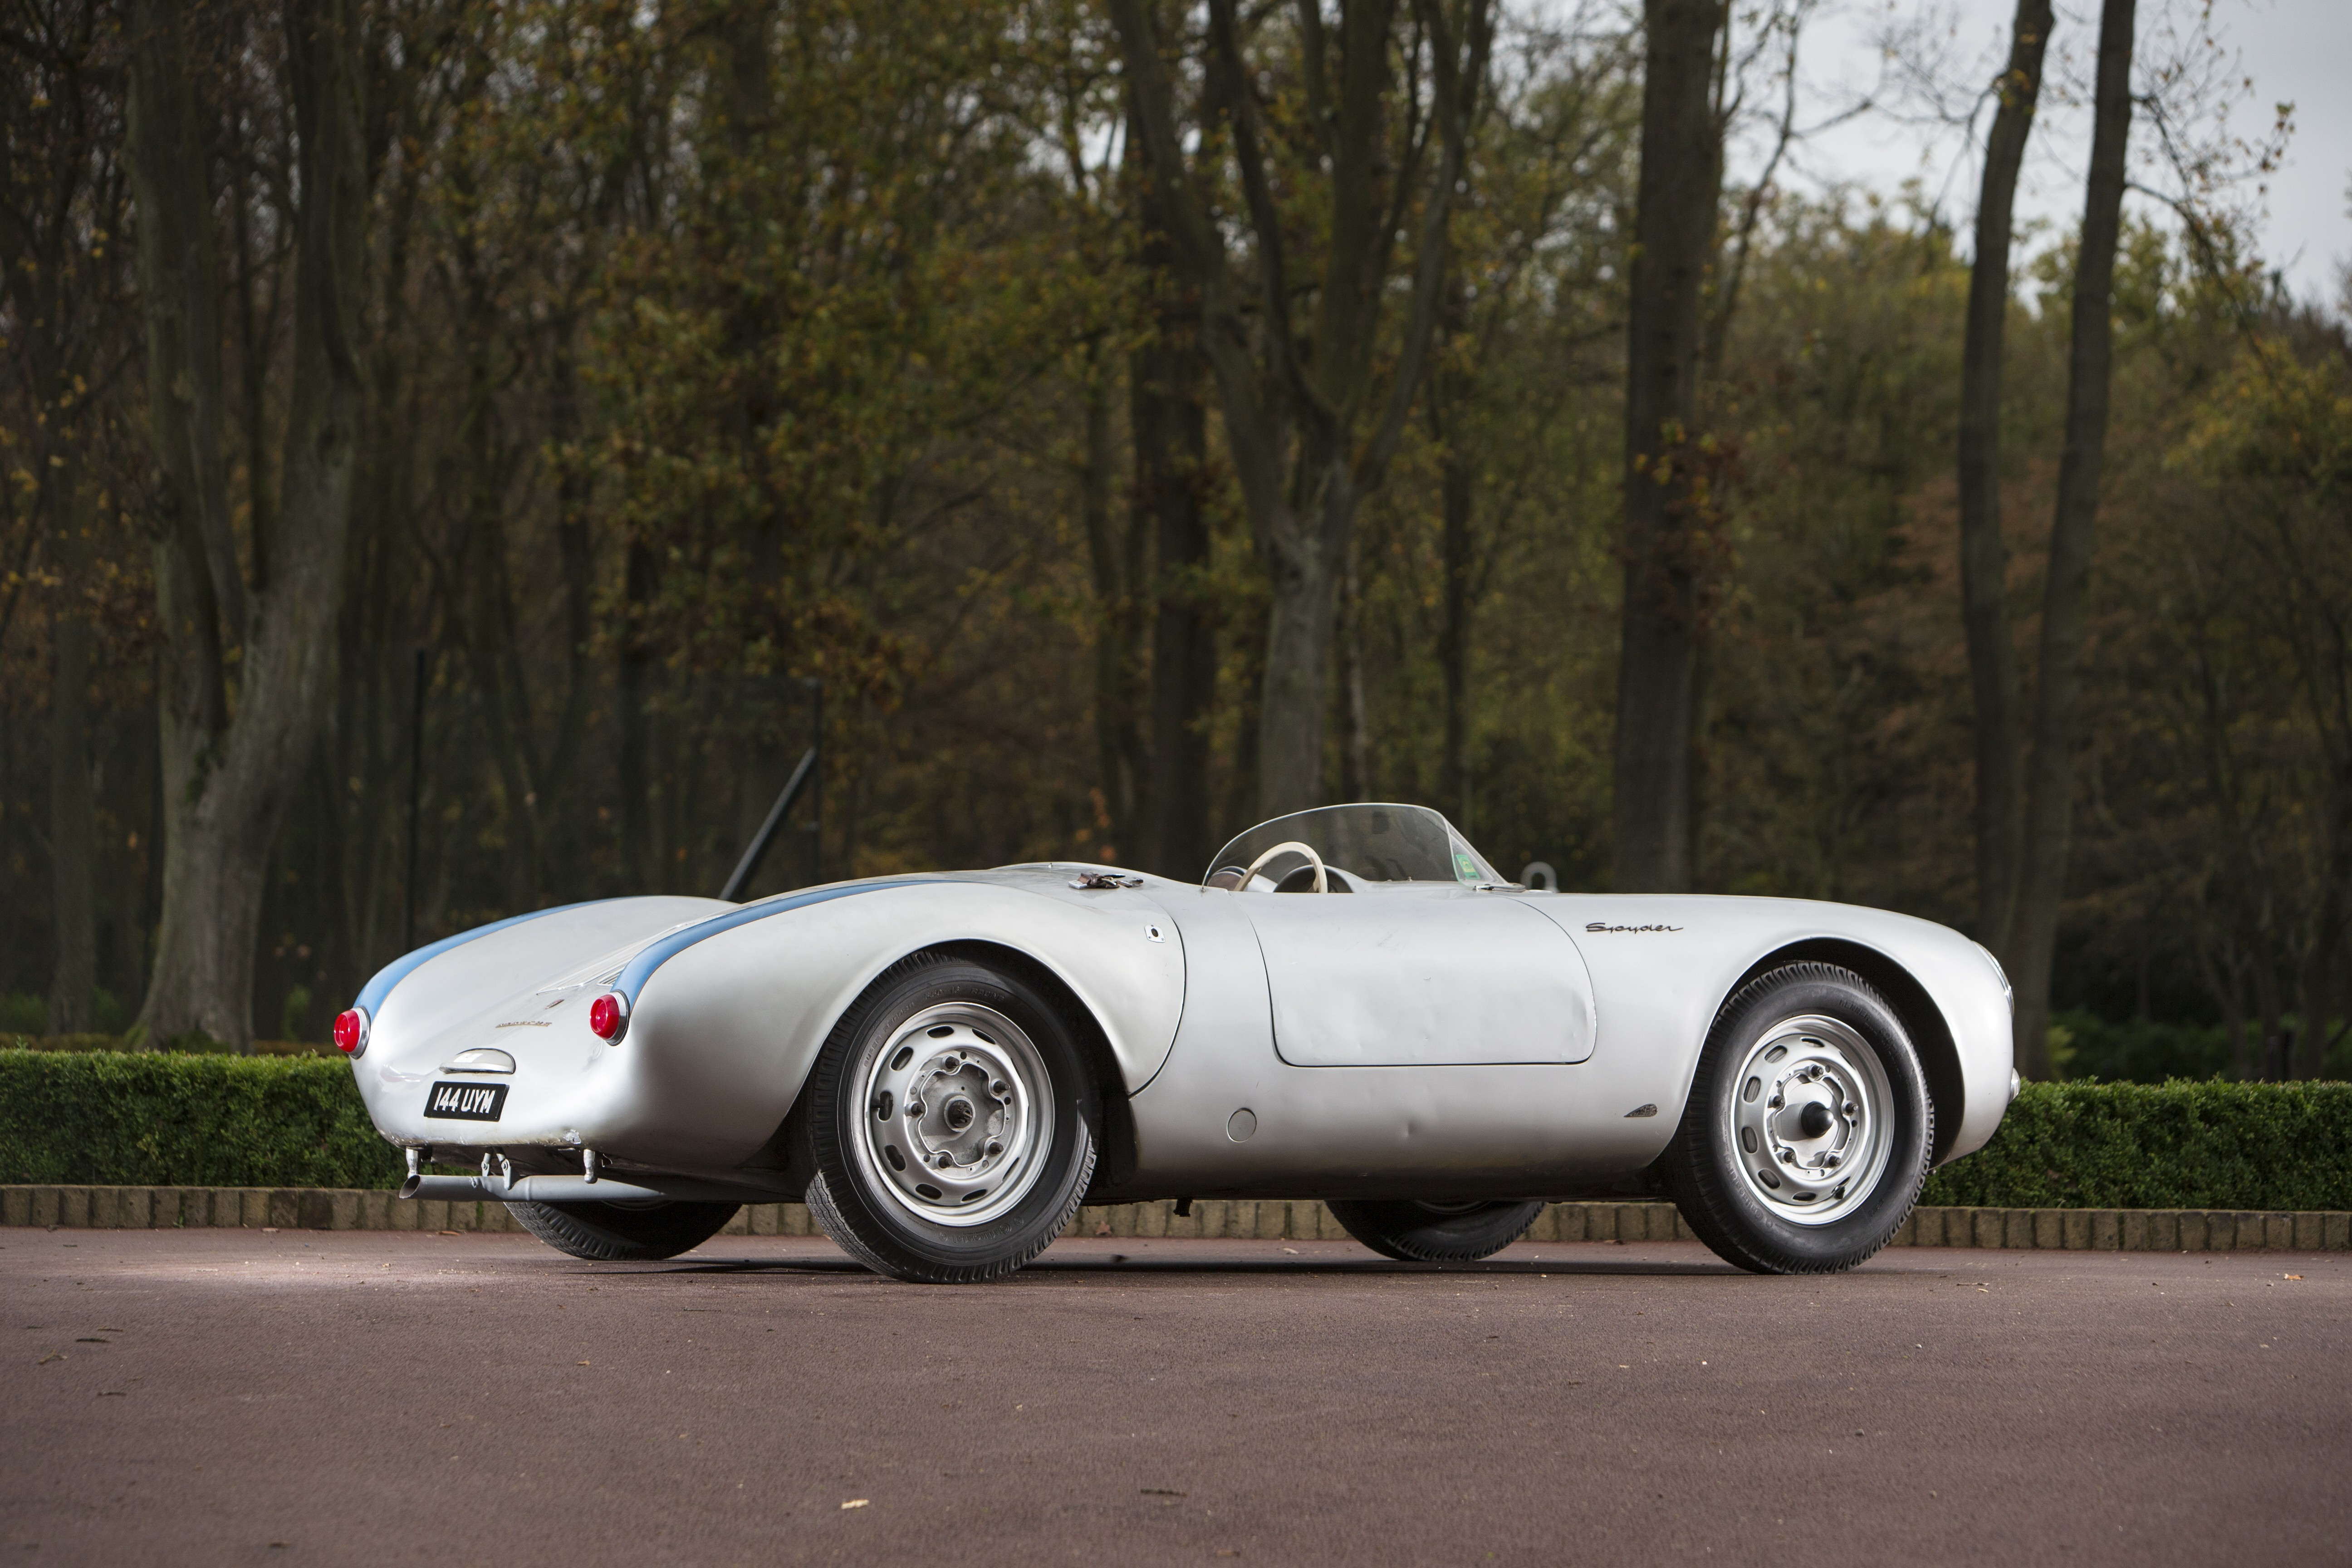 WORLD RECORD ACHIEVED AS PORSCHE 550 SELLS FOR £4.6 MILLION AT BONHAMS GOODWOOD REVIVAL AUCTION cover